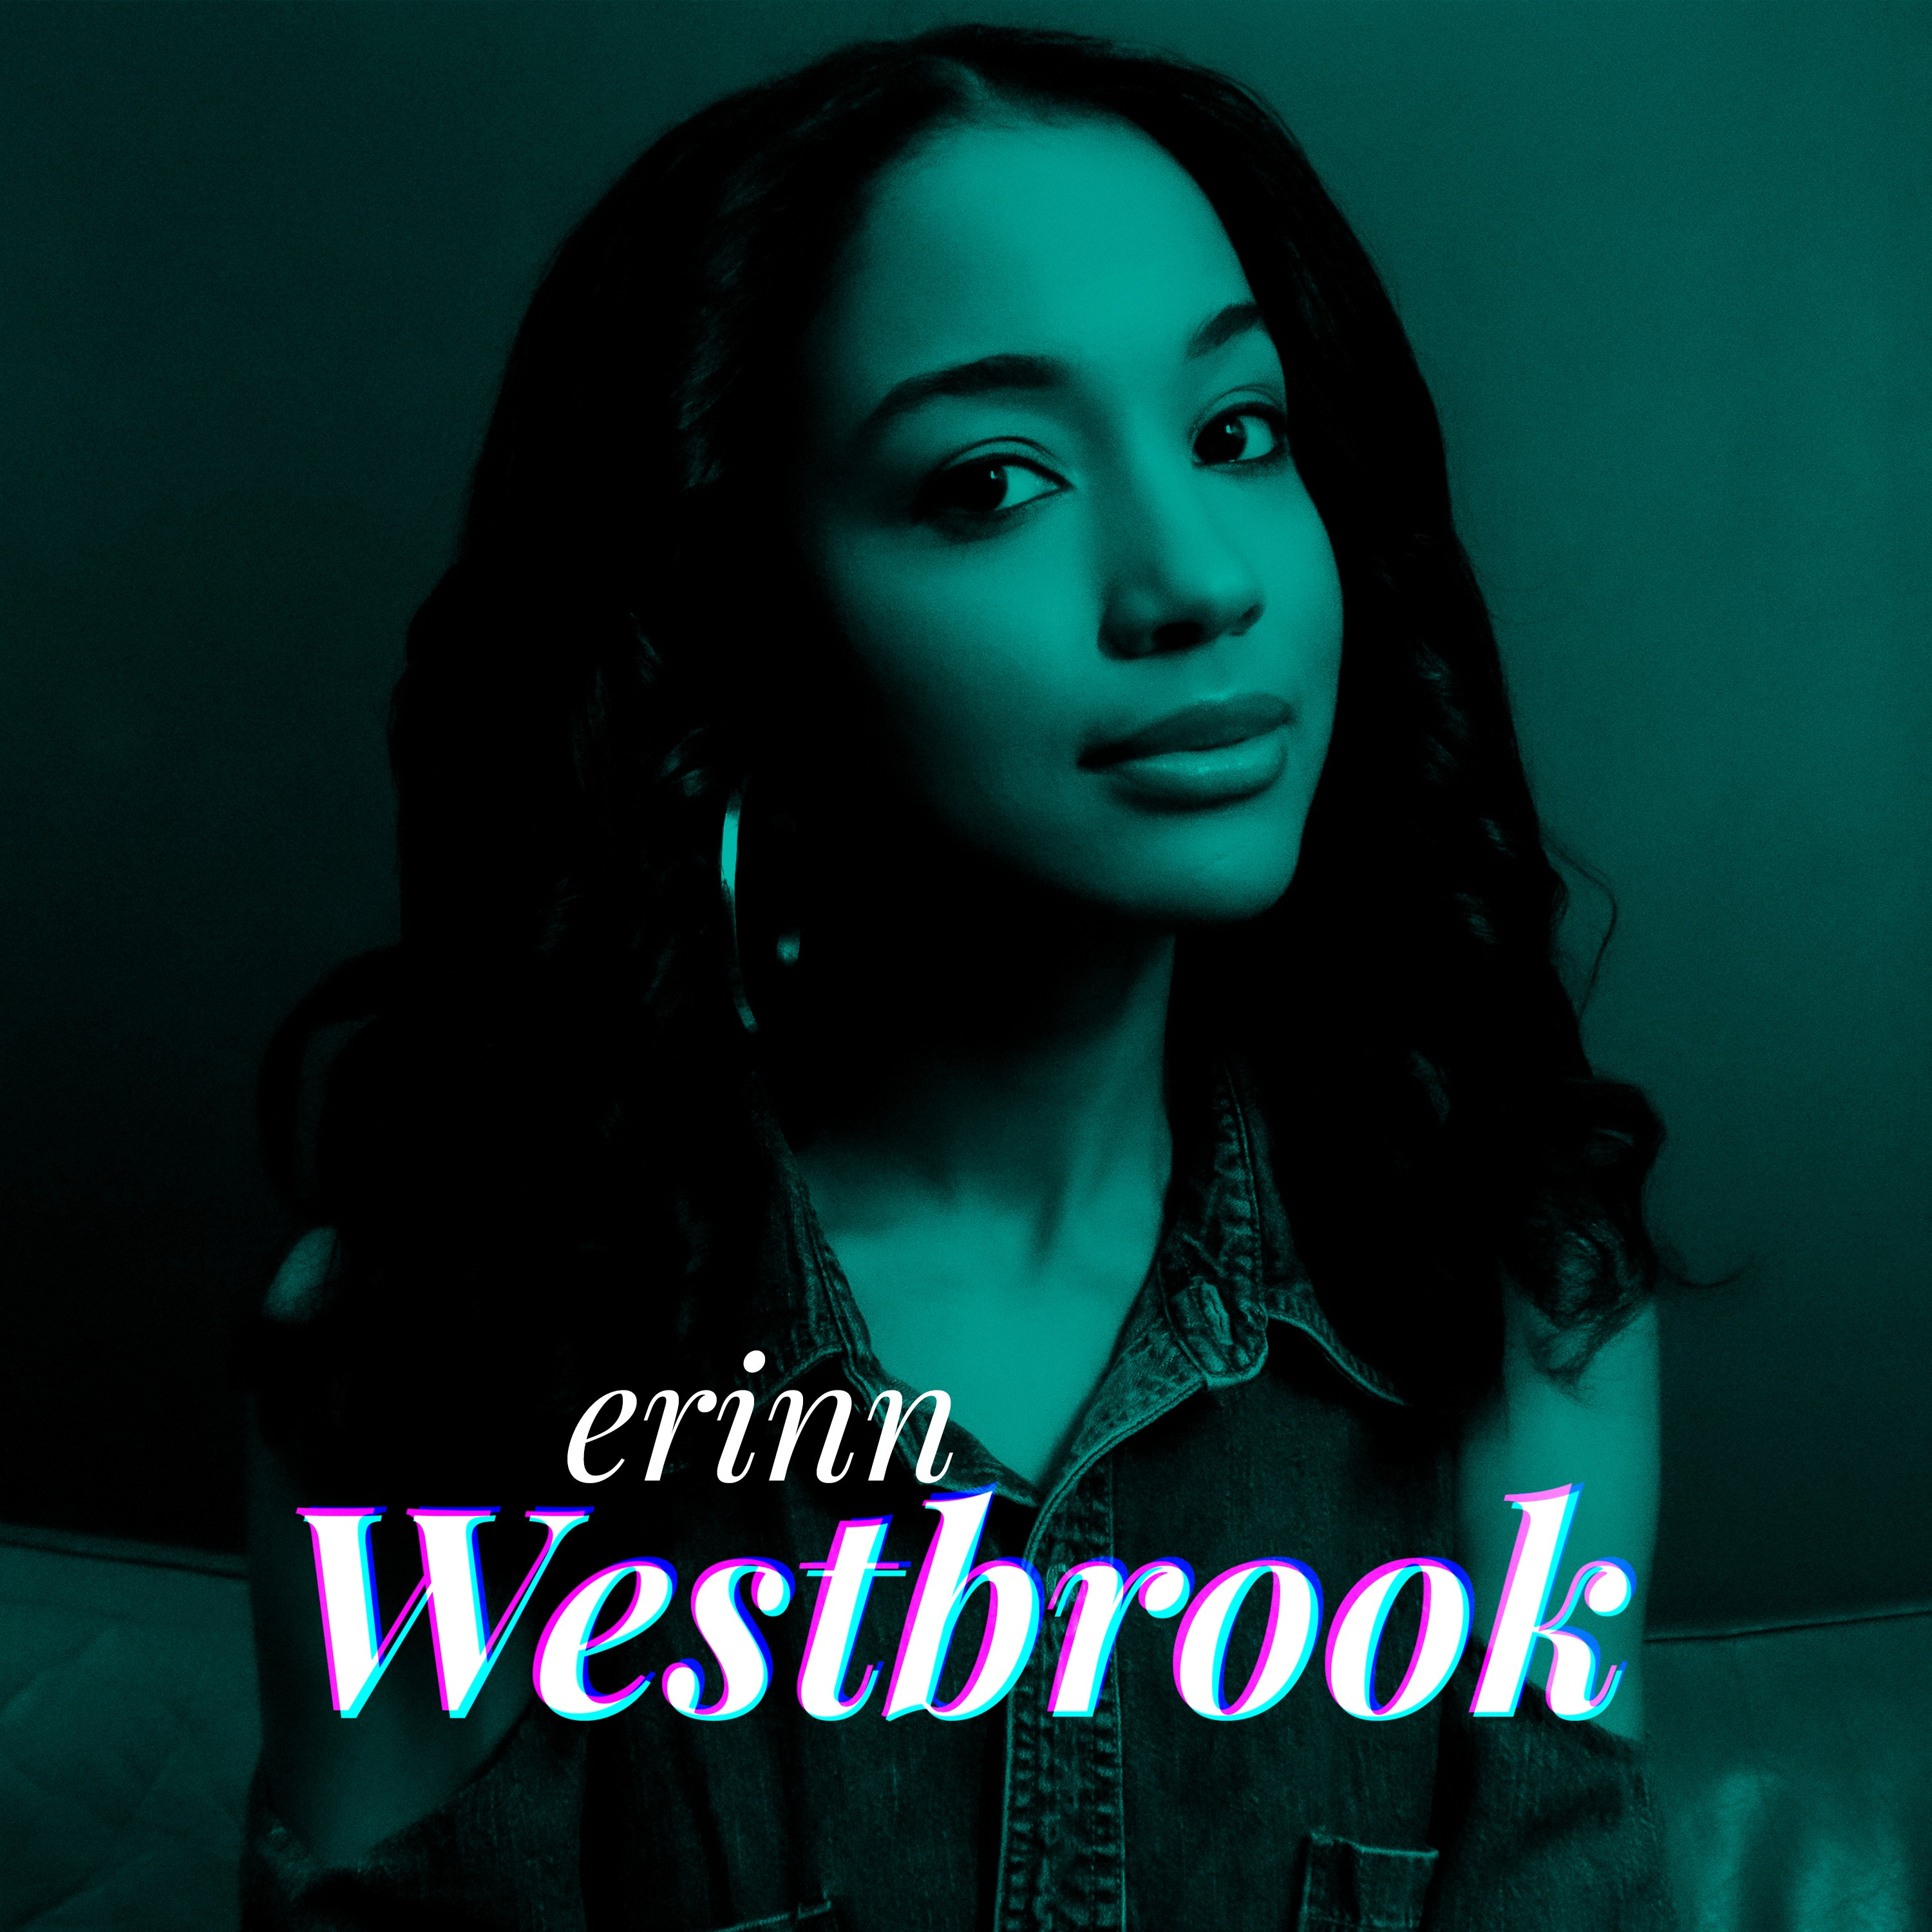 Erinn Westbrook on identity, representation, and working with animals